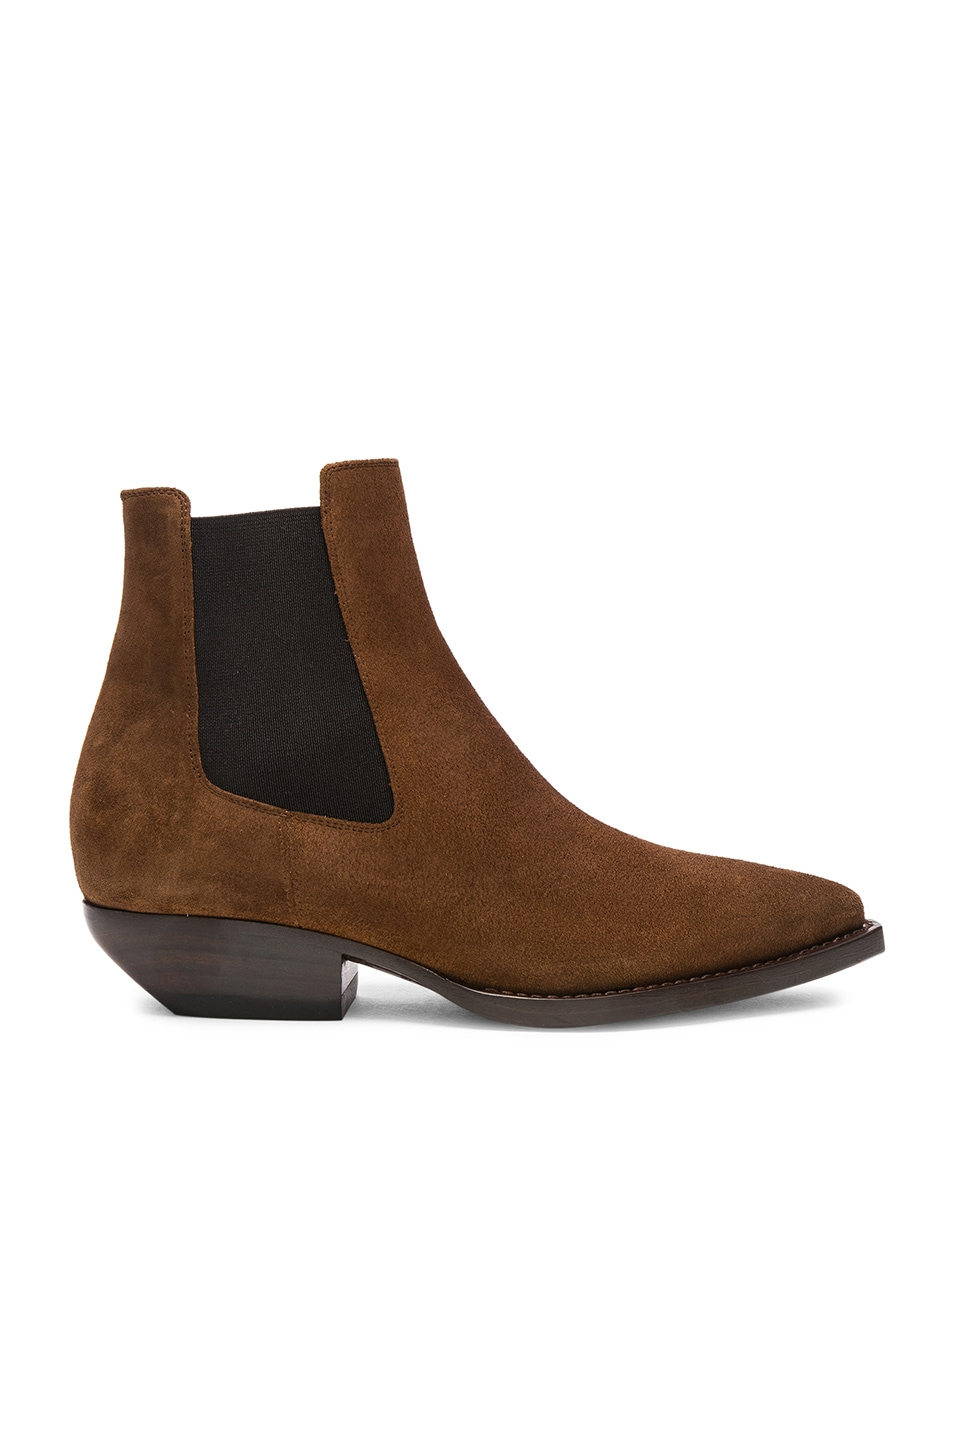 Image 1 of Saint Laurent Suede Theo Chelsea Boots in Caramel